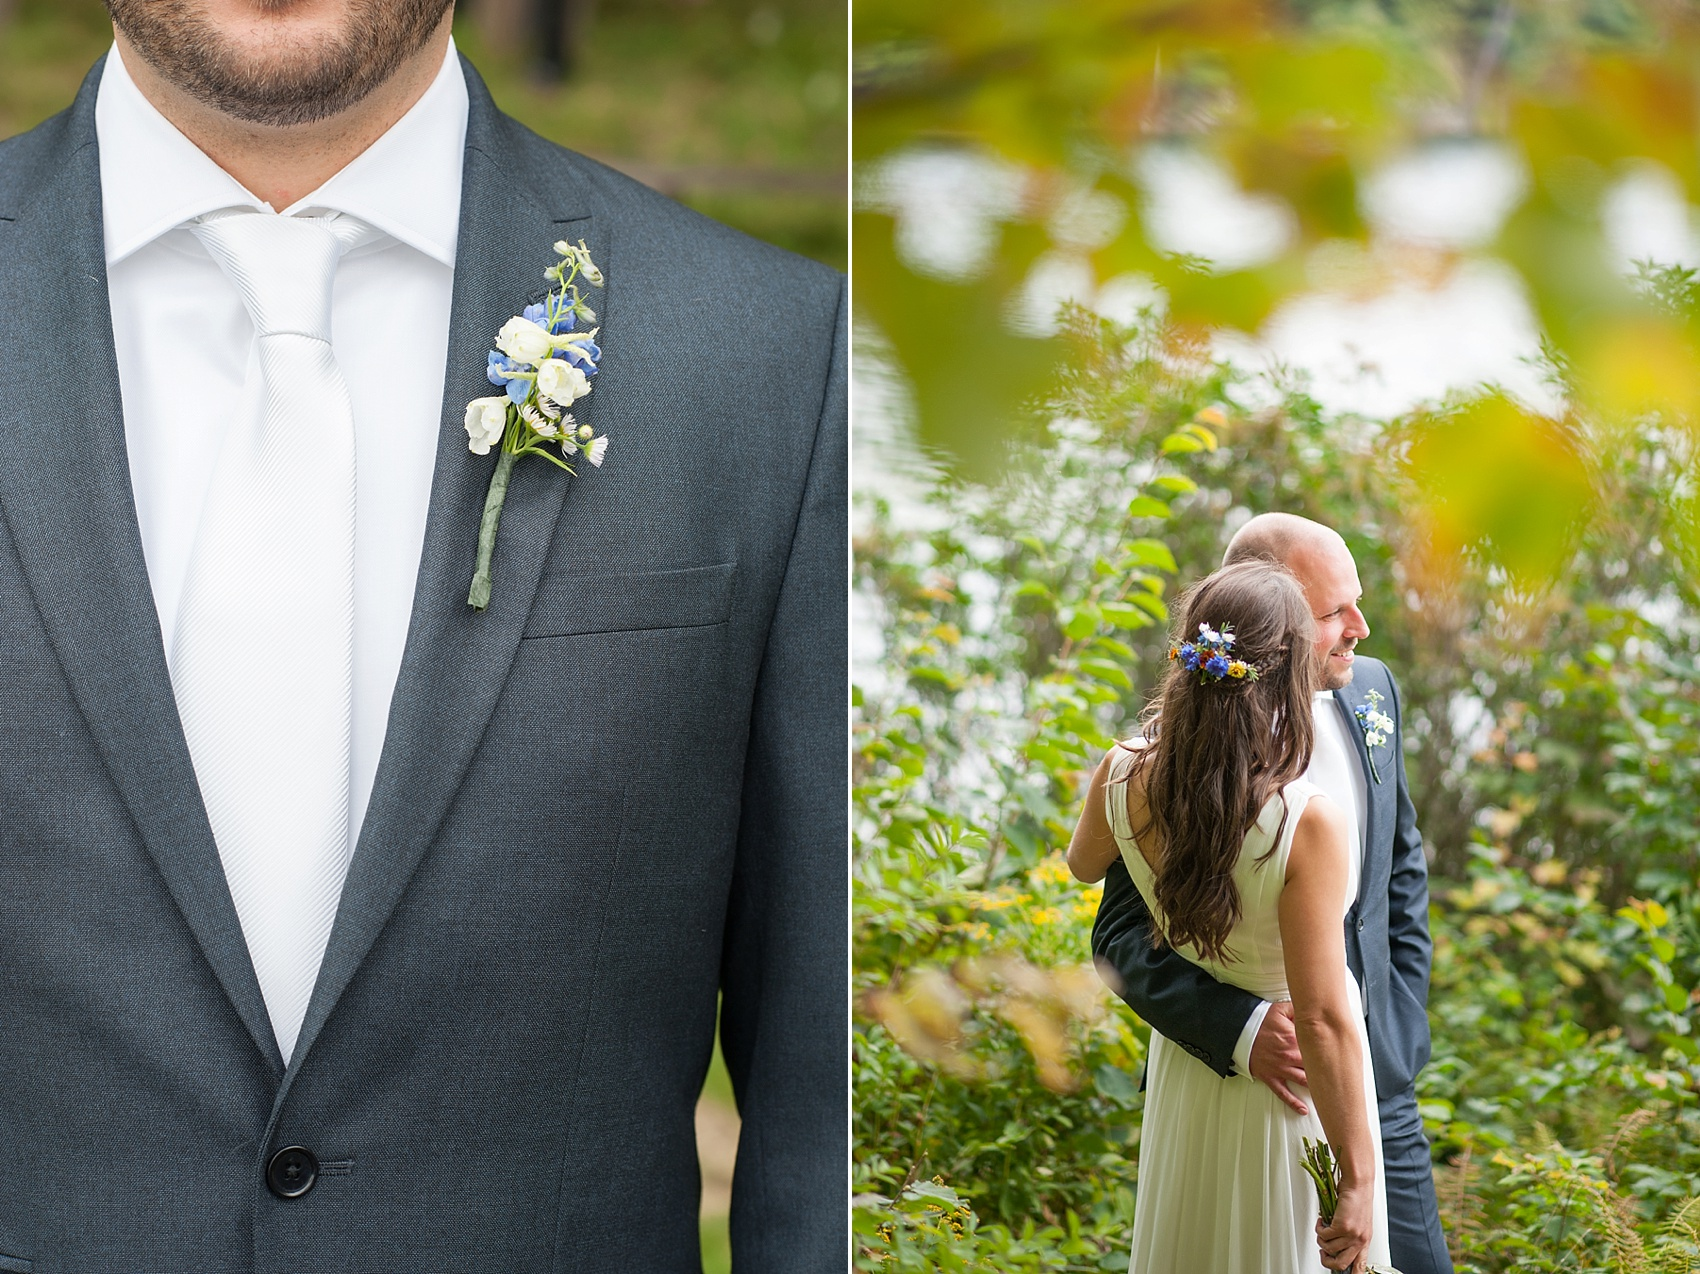 Wildflower boutonniere for a rustic Massachusetts Berkshires wedding at Camp Wa Wa Segowea. Photos by Mikkel Paige Photography, destination wedding photographer.